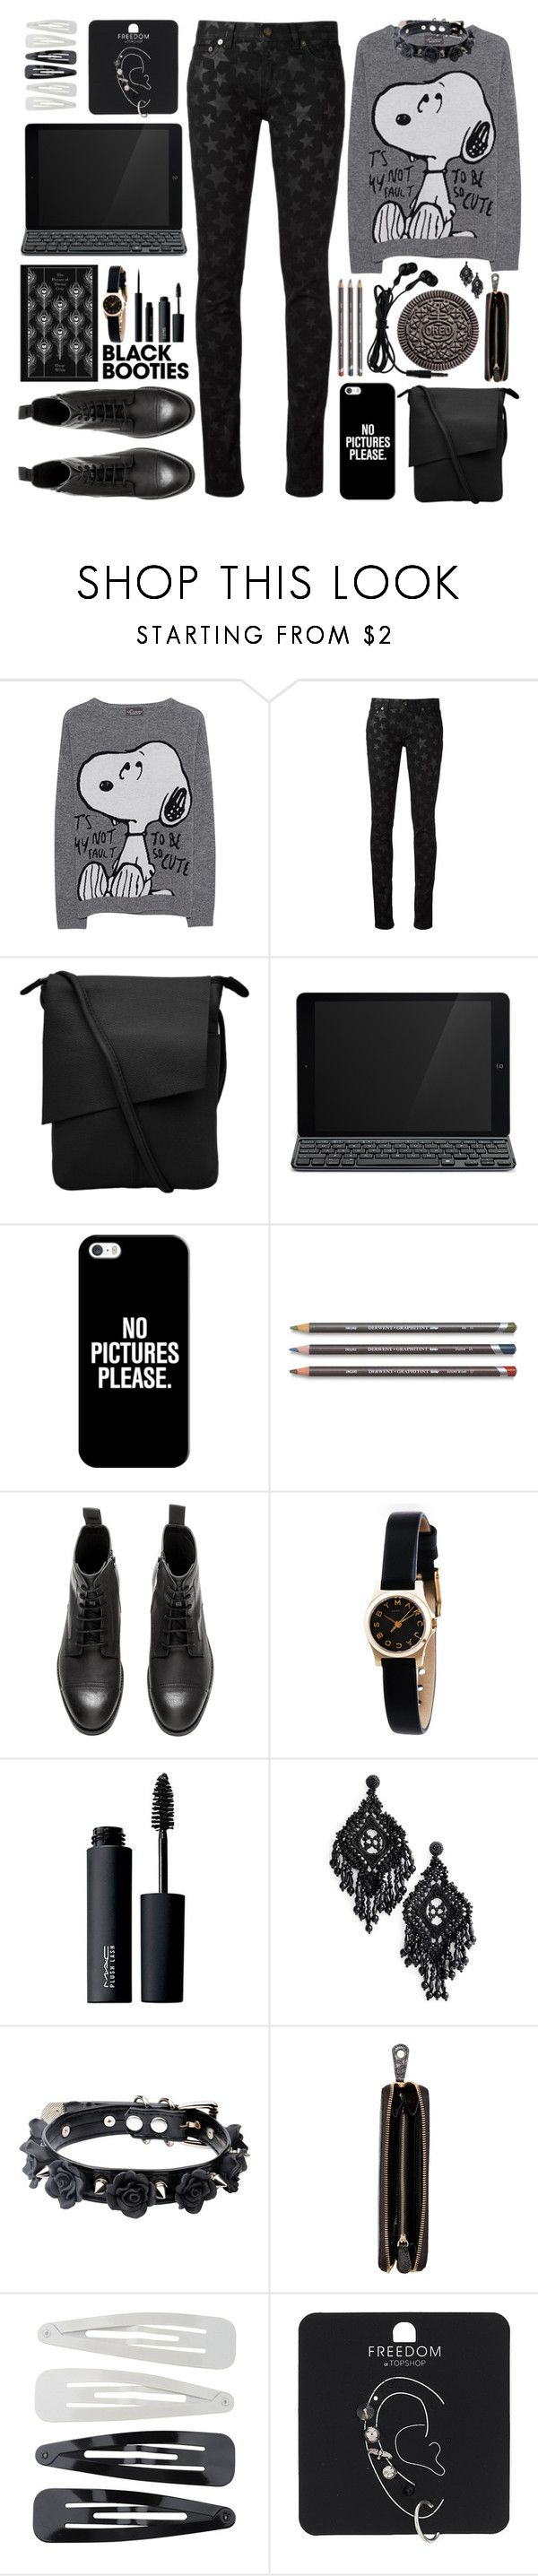 """Back To Basics: Black Booties"" by moodboardsbyluna ❤ liked on Polyvore featuring Princess Goes Hollywood, Yves Saint Laurent, Logitech, Casetify, H&M, Marc by Marc Jacobs, MAC Cosmetics, Kate Spade, Penguin Group and Nomadic"